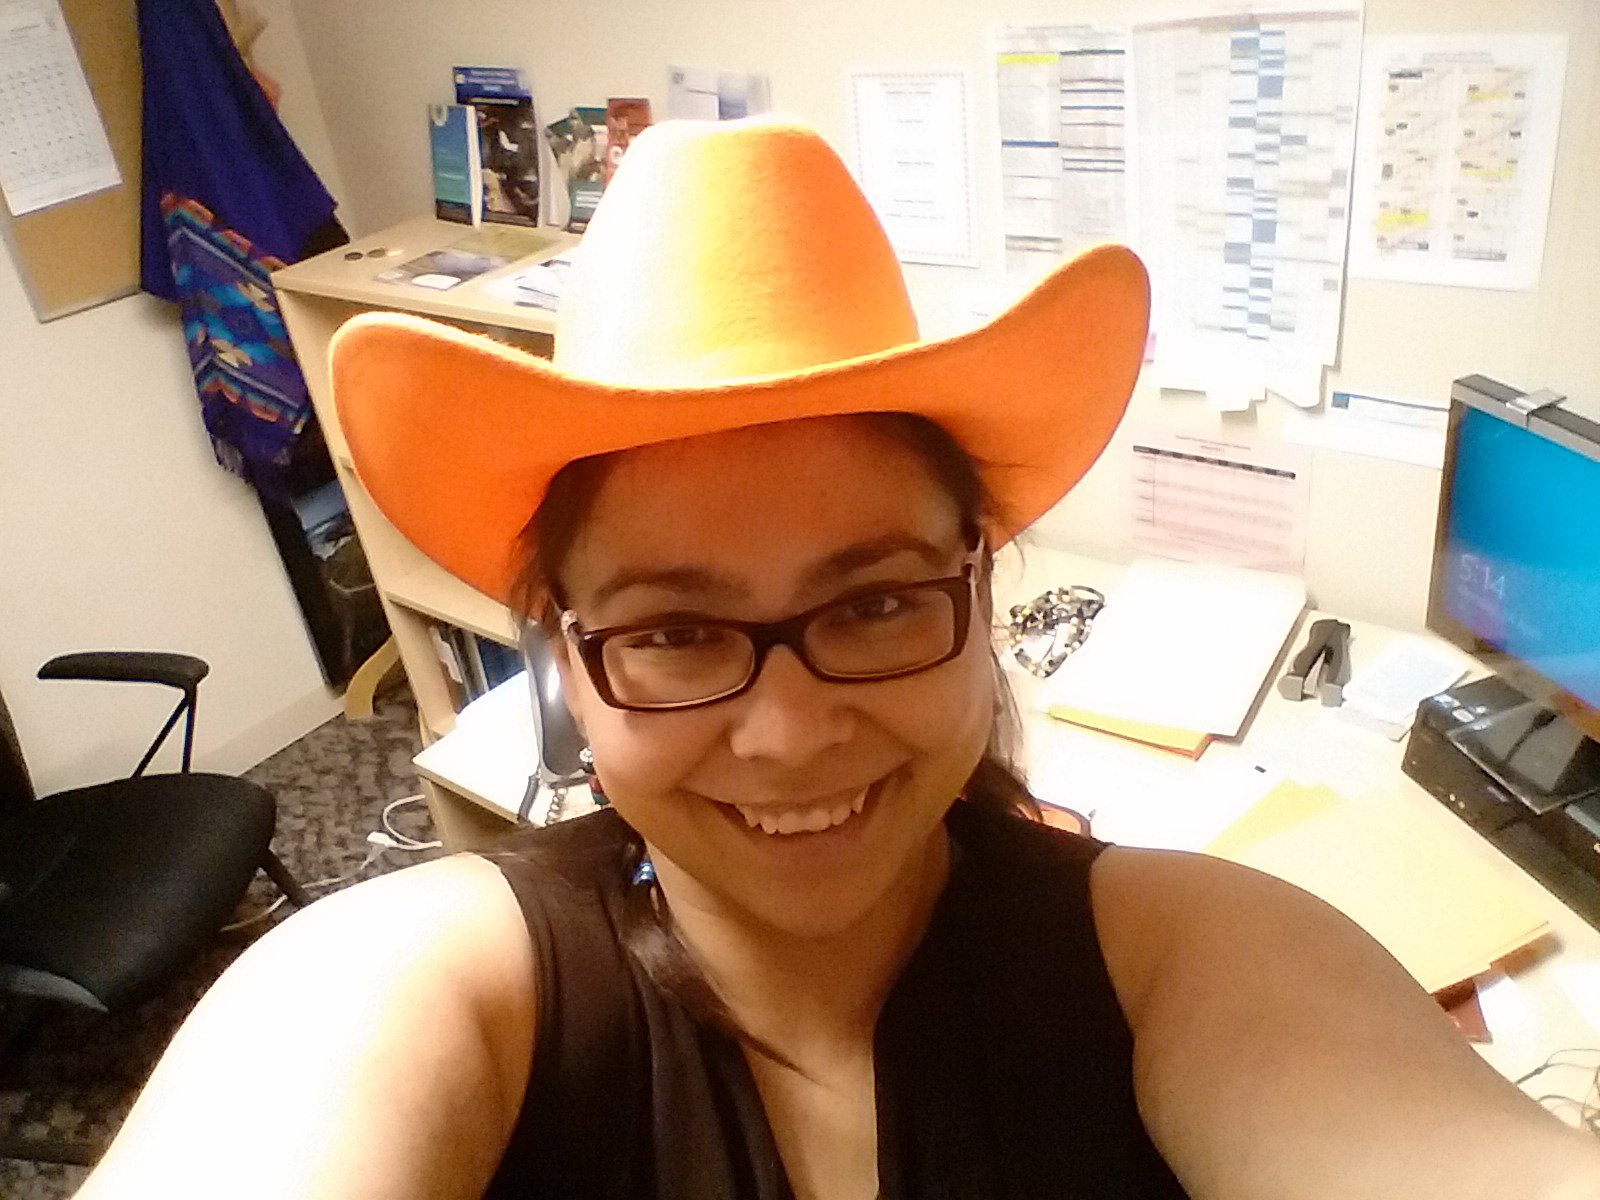 First day at my new job. Great welcome and officially one of the staff sporting my Raider Orange cowgirl hat! #YRHS https://t.co/opq6KiQuIc